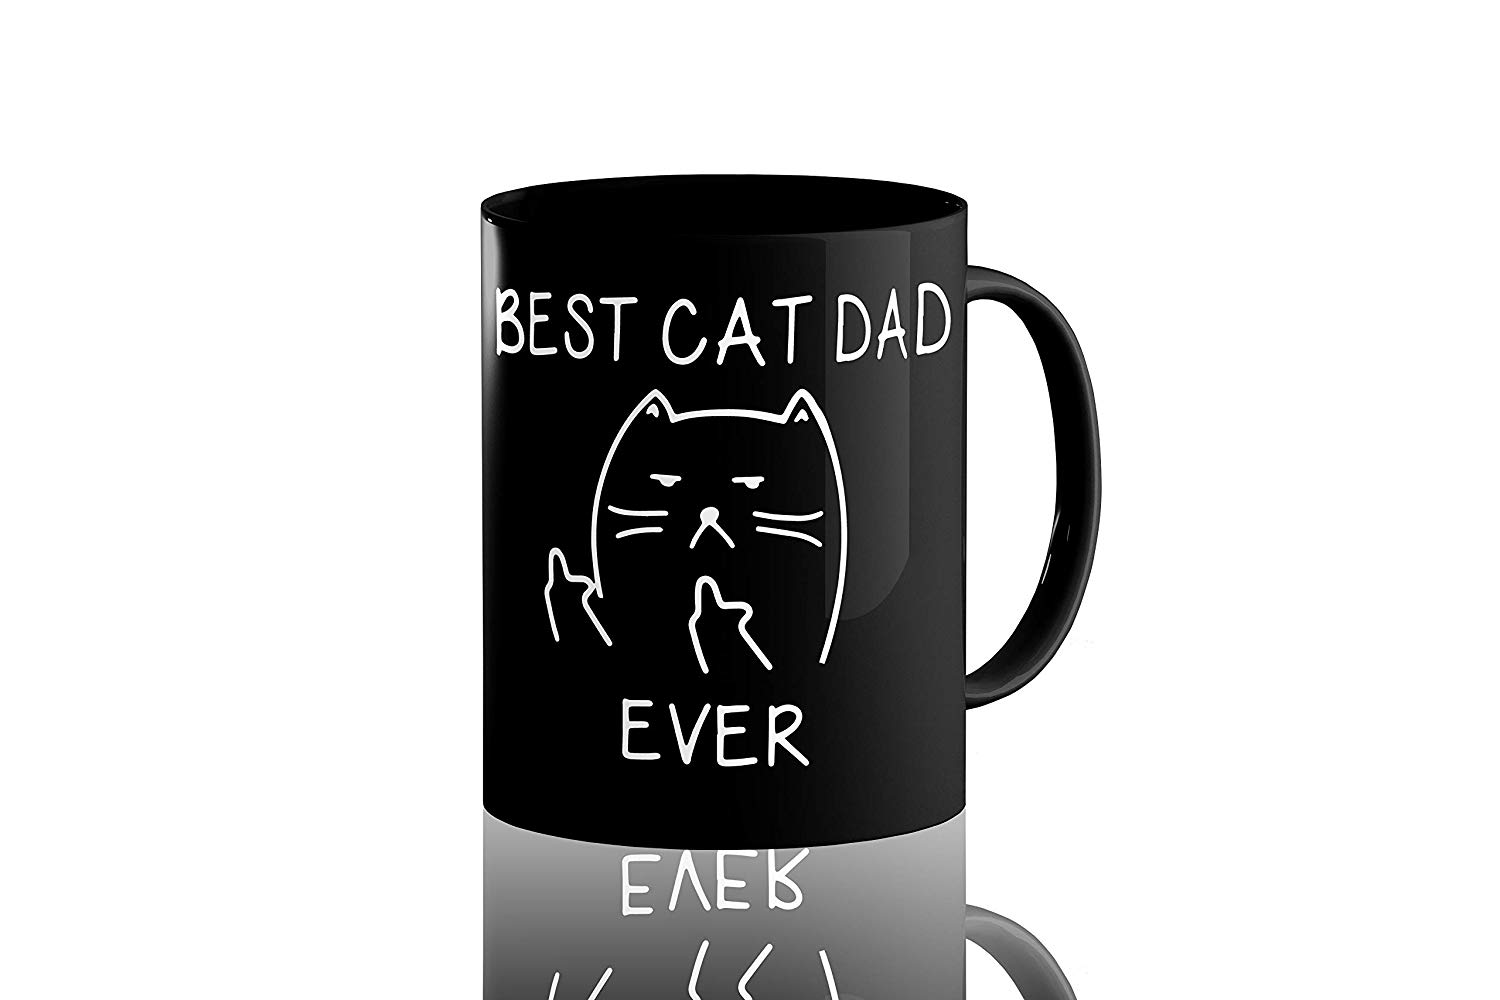 Best Cat Dad Ever,Funny Cat Lover Gifts, Funny Middle Finger Black Coffee Mug,Unique Birthday Gift For Dad